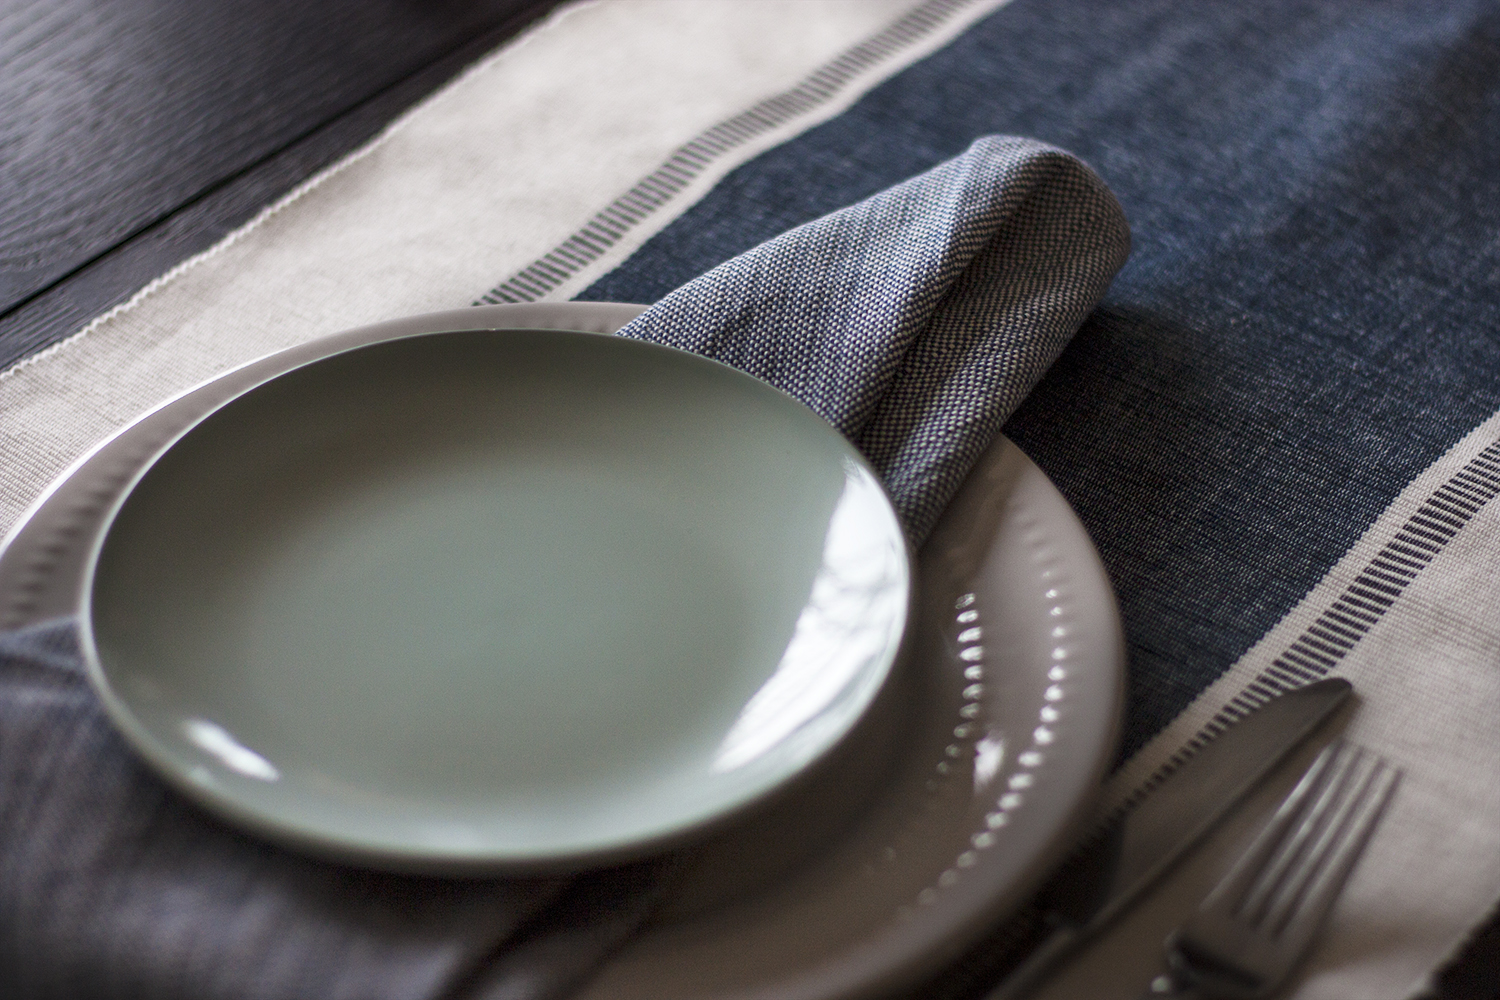 I LOVE this laidback place setting with the napkin under the salad plate. Pretty aqua and blue decor in this casual tablescape.